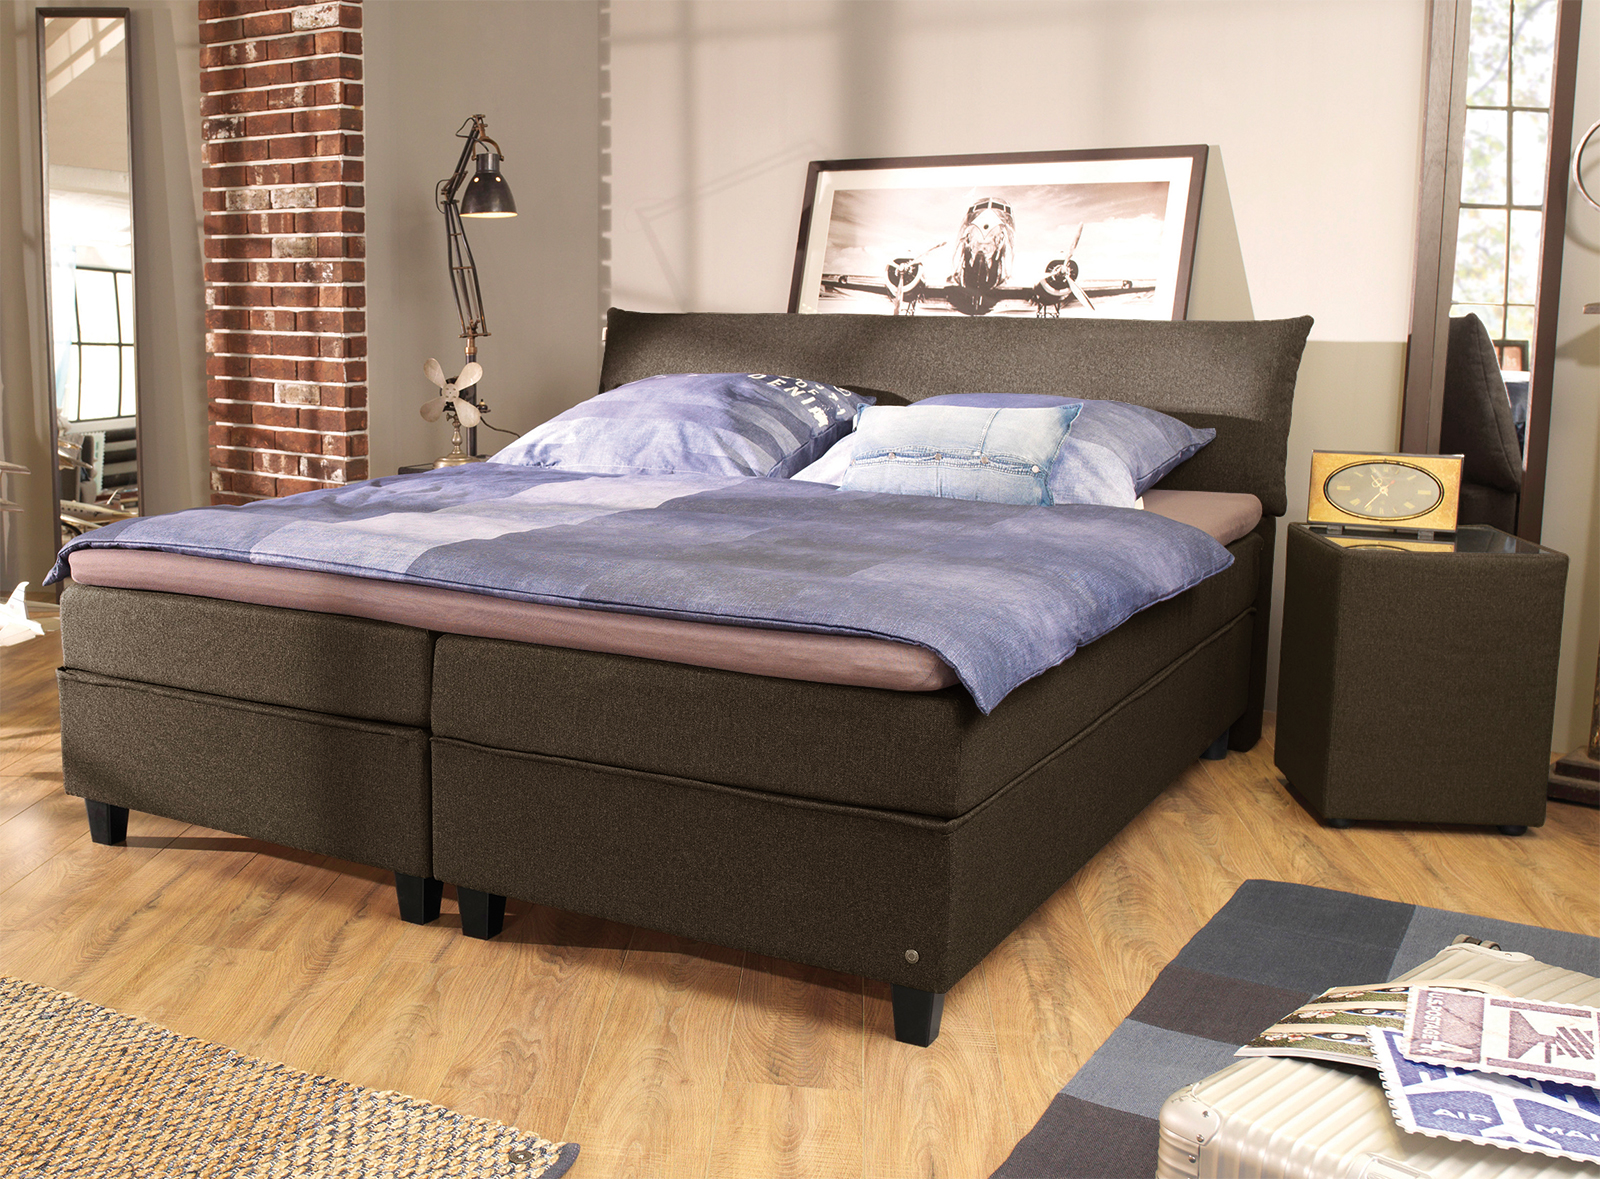 modernes tom tailor color design boxspringbett mit kopfteil. Black Bedroom Furniture Sets. Home Design Ideas